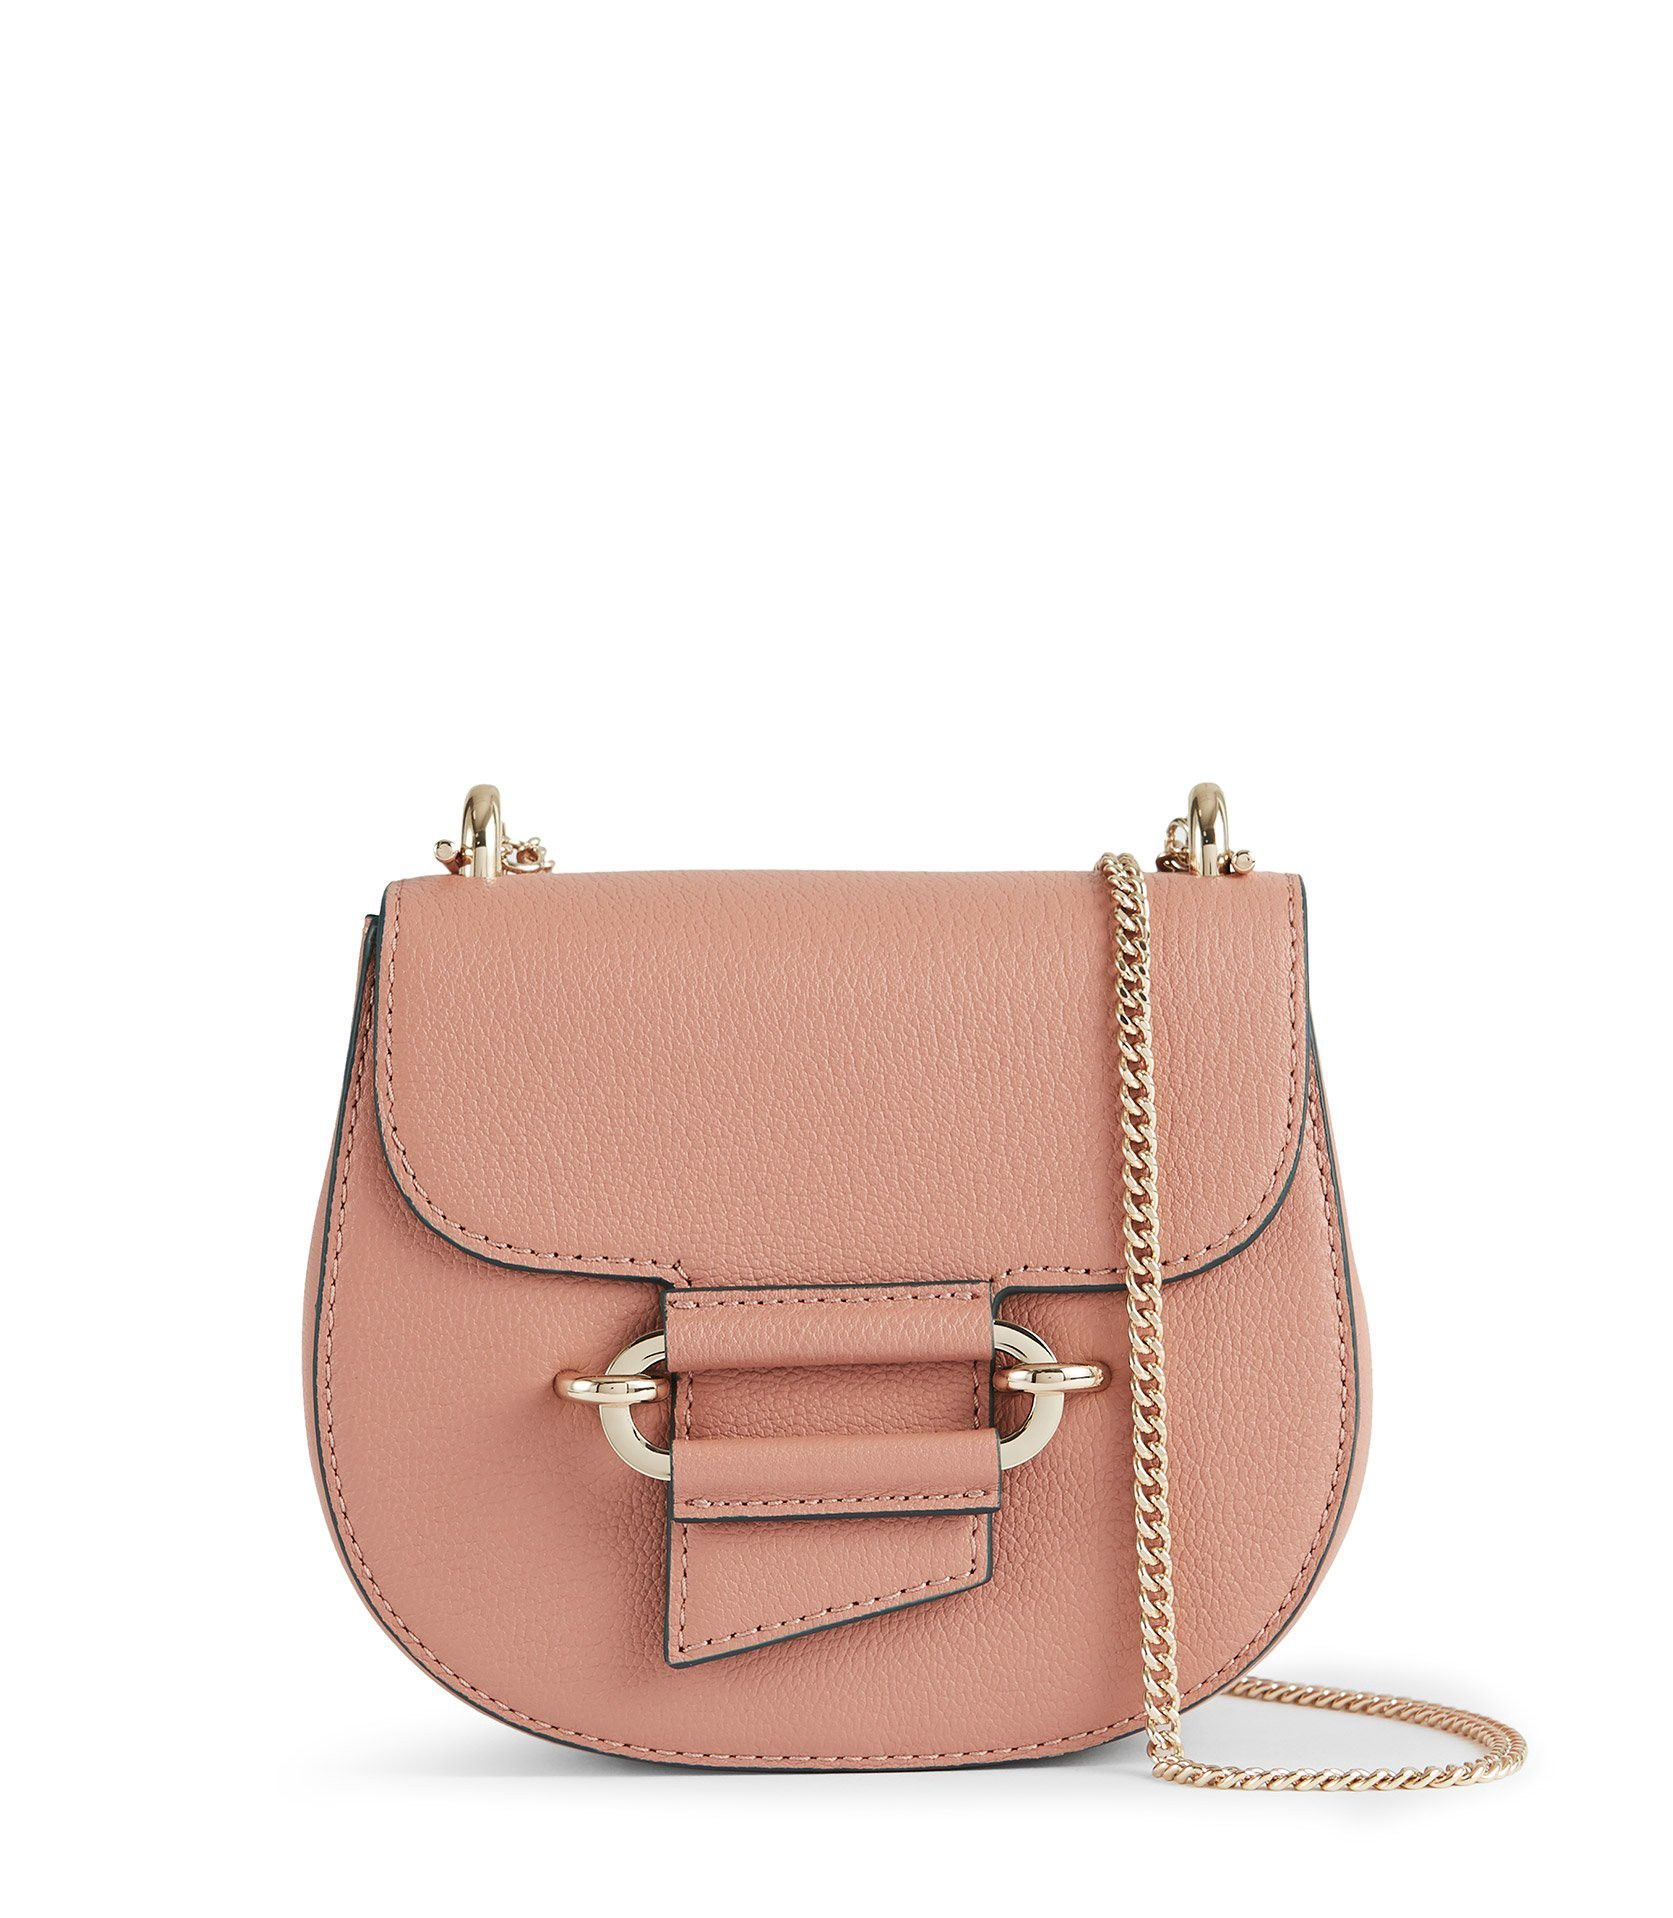 5ca9914f9ba2 REISS MALTBY MINI MINI CROSS-BODY BAG ROSE.  reiss  bags  shoulder bags   leather